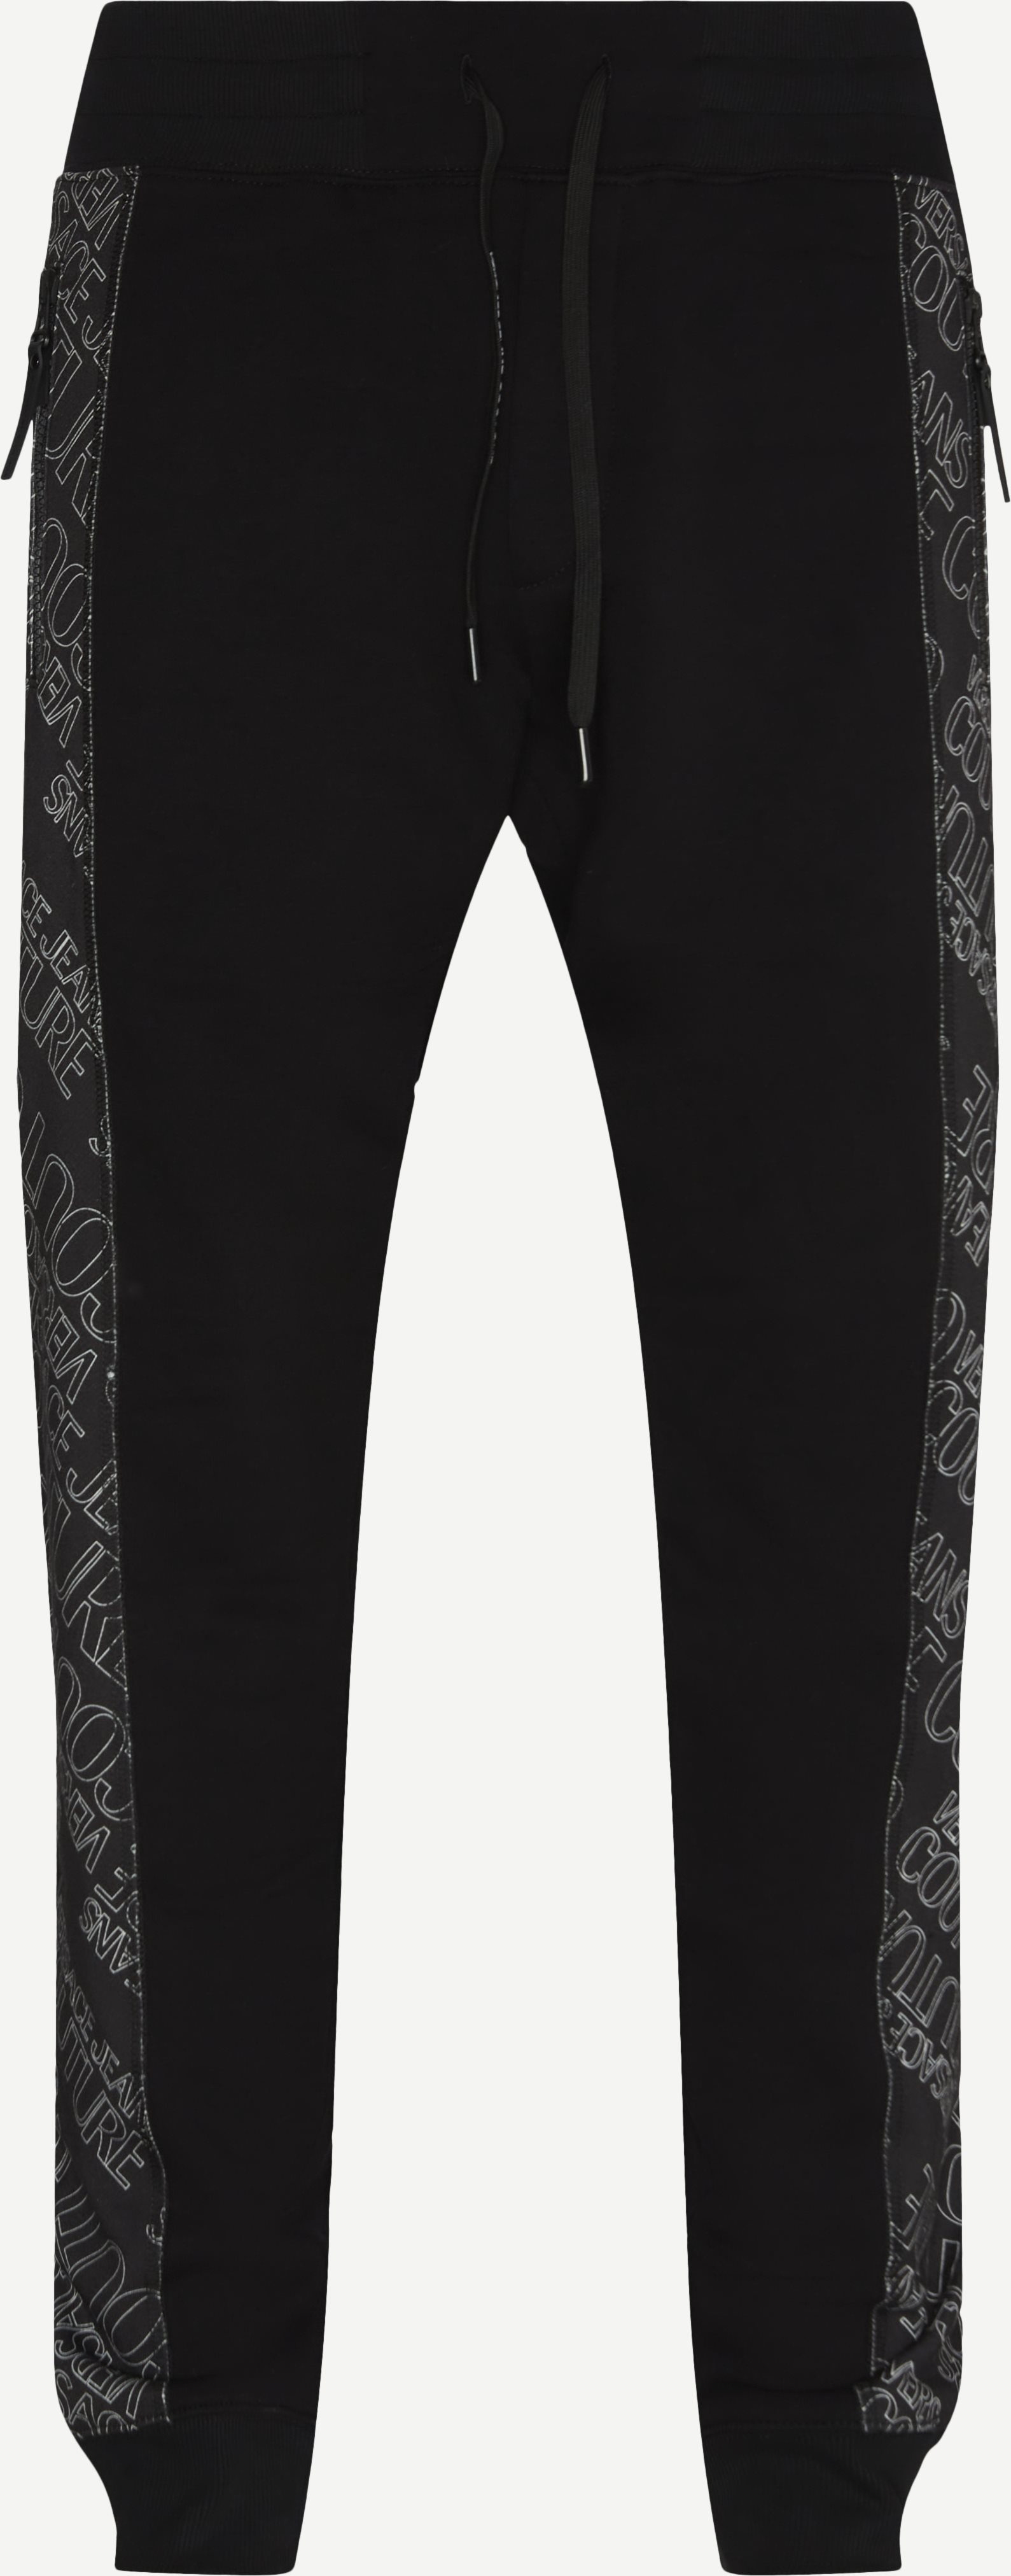 Logomania Sweatpant - Byxor - Regular - Svart